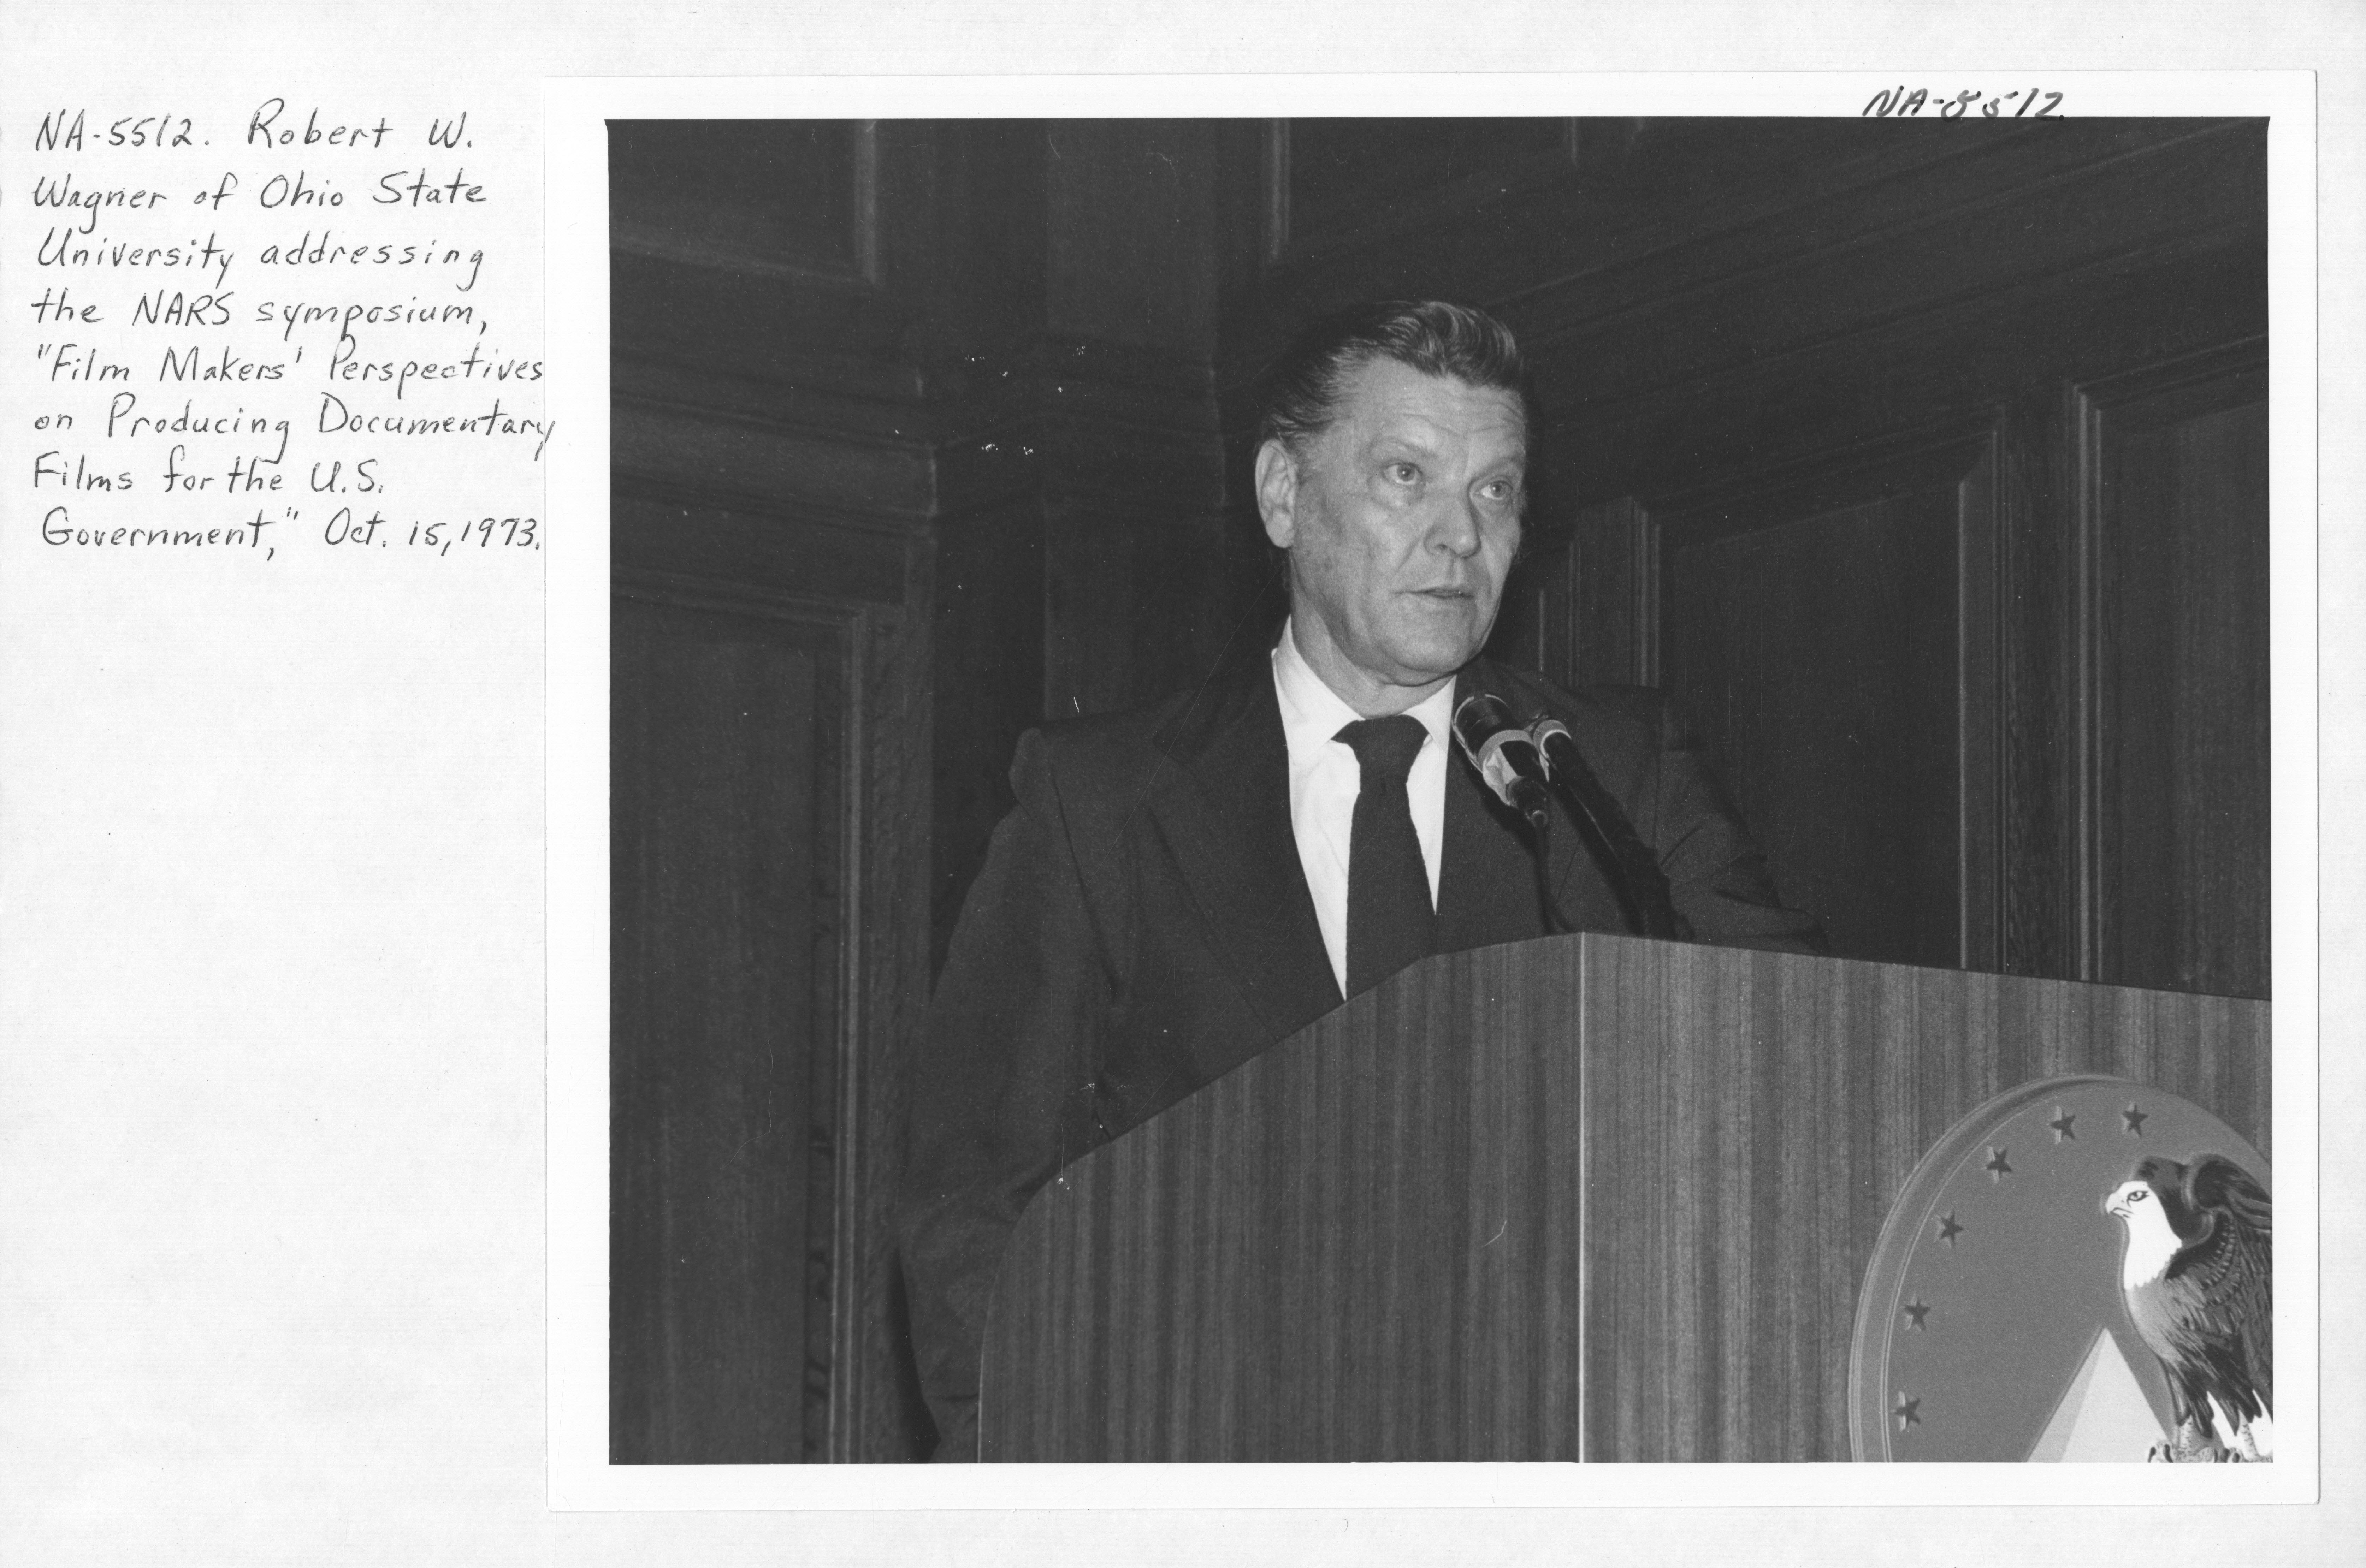 Photograph of Robert W. Wagner Addressing the National Archives Symposium on